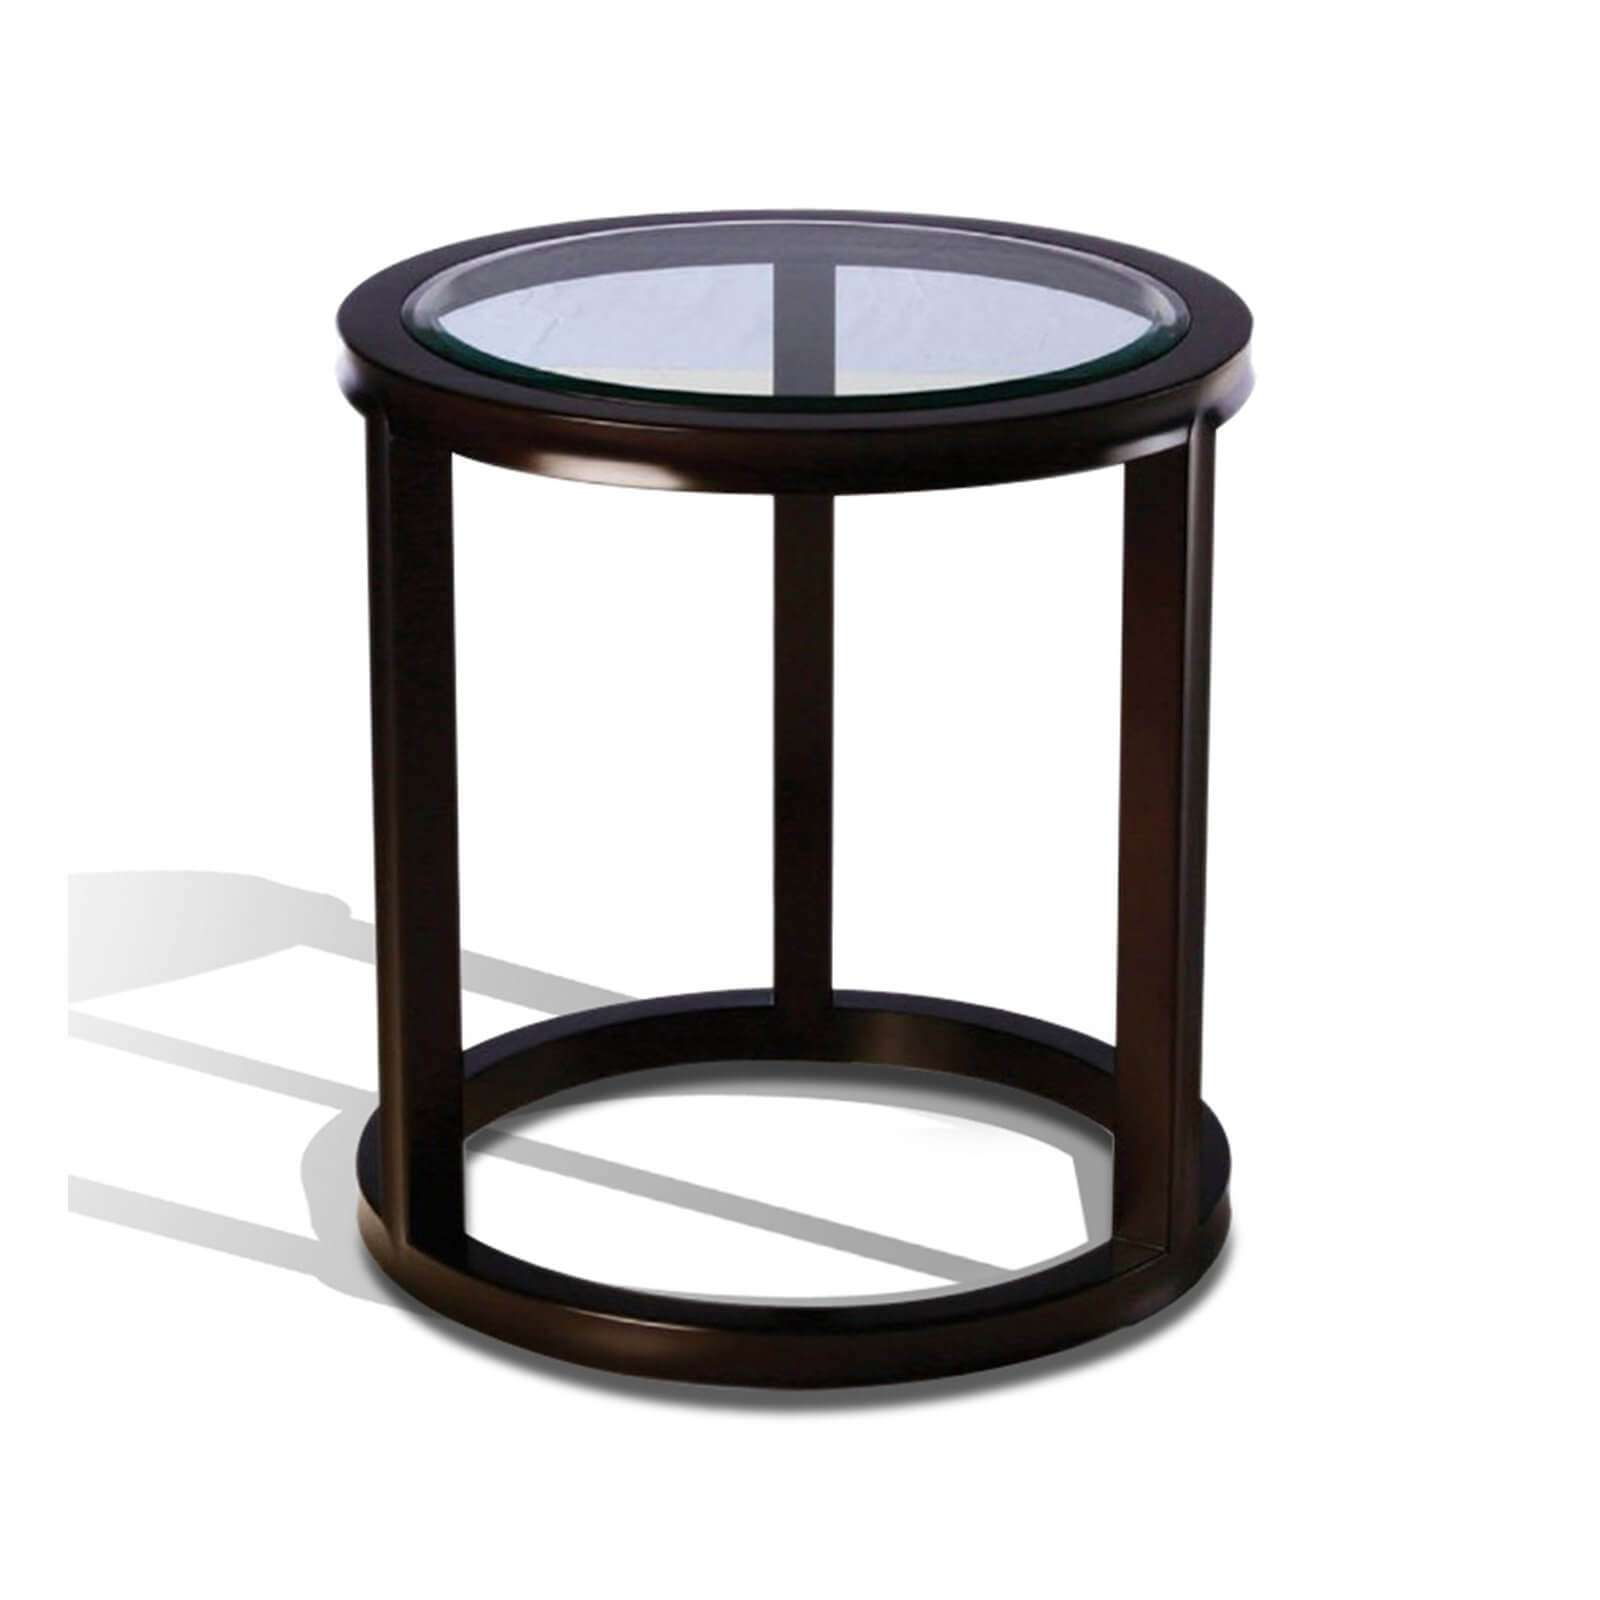 FIFTH AVE ROUND SIDE TABLE - STUART MEMBERY HOME COLLECTION